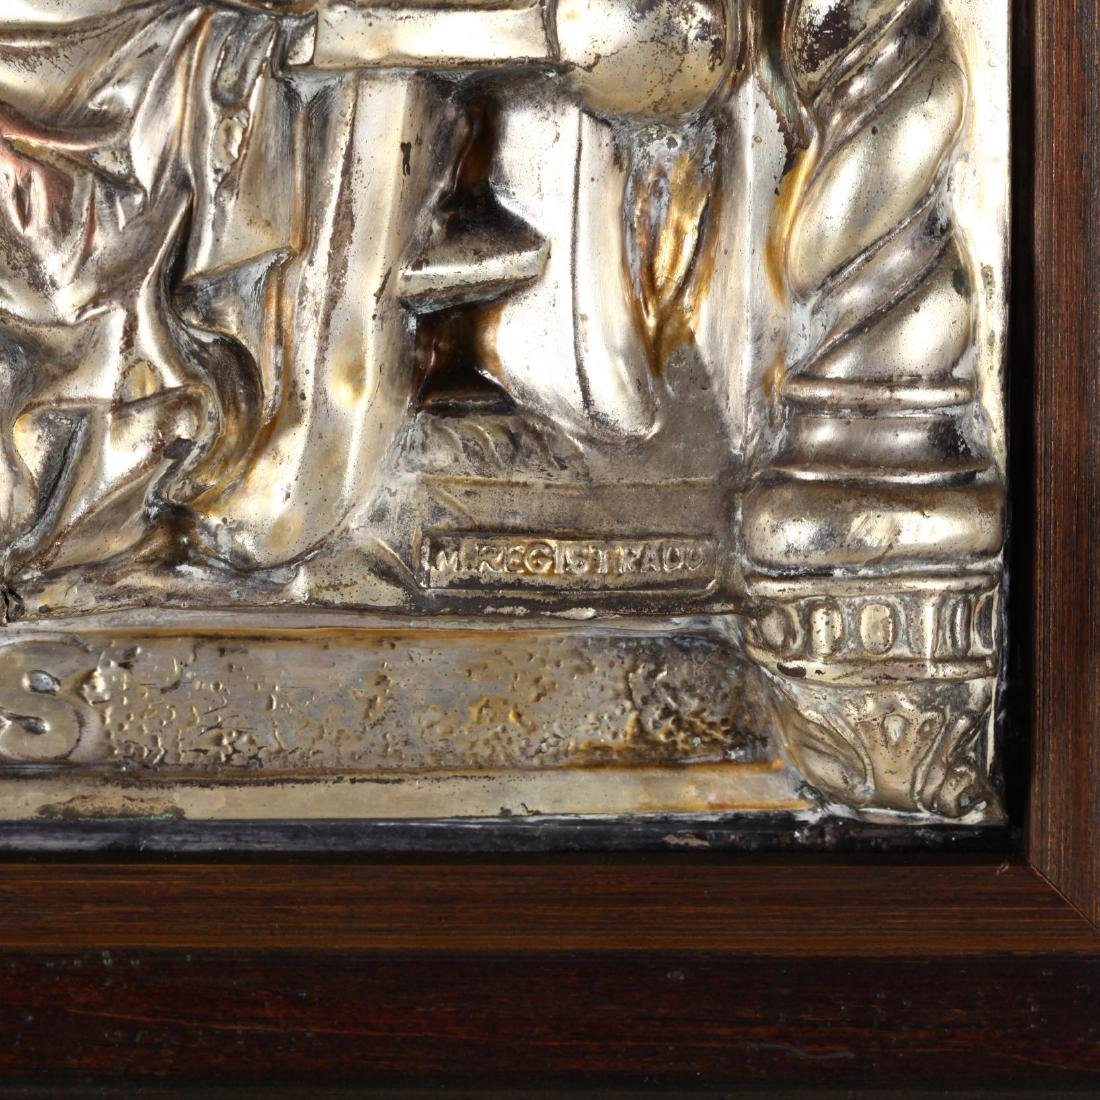 A Vintage Silverplate Plaque of the Last Supper - 2